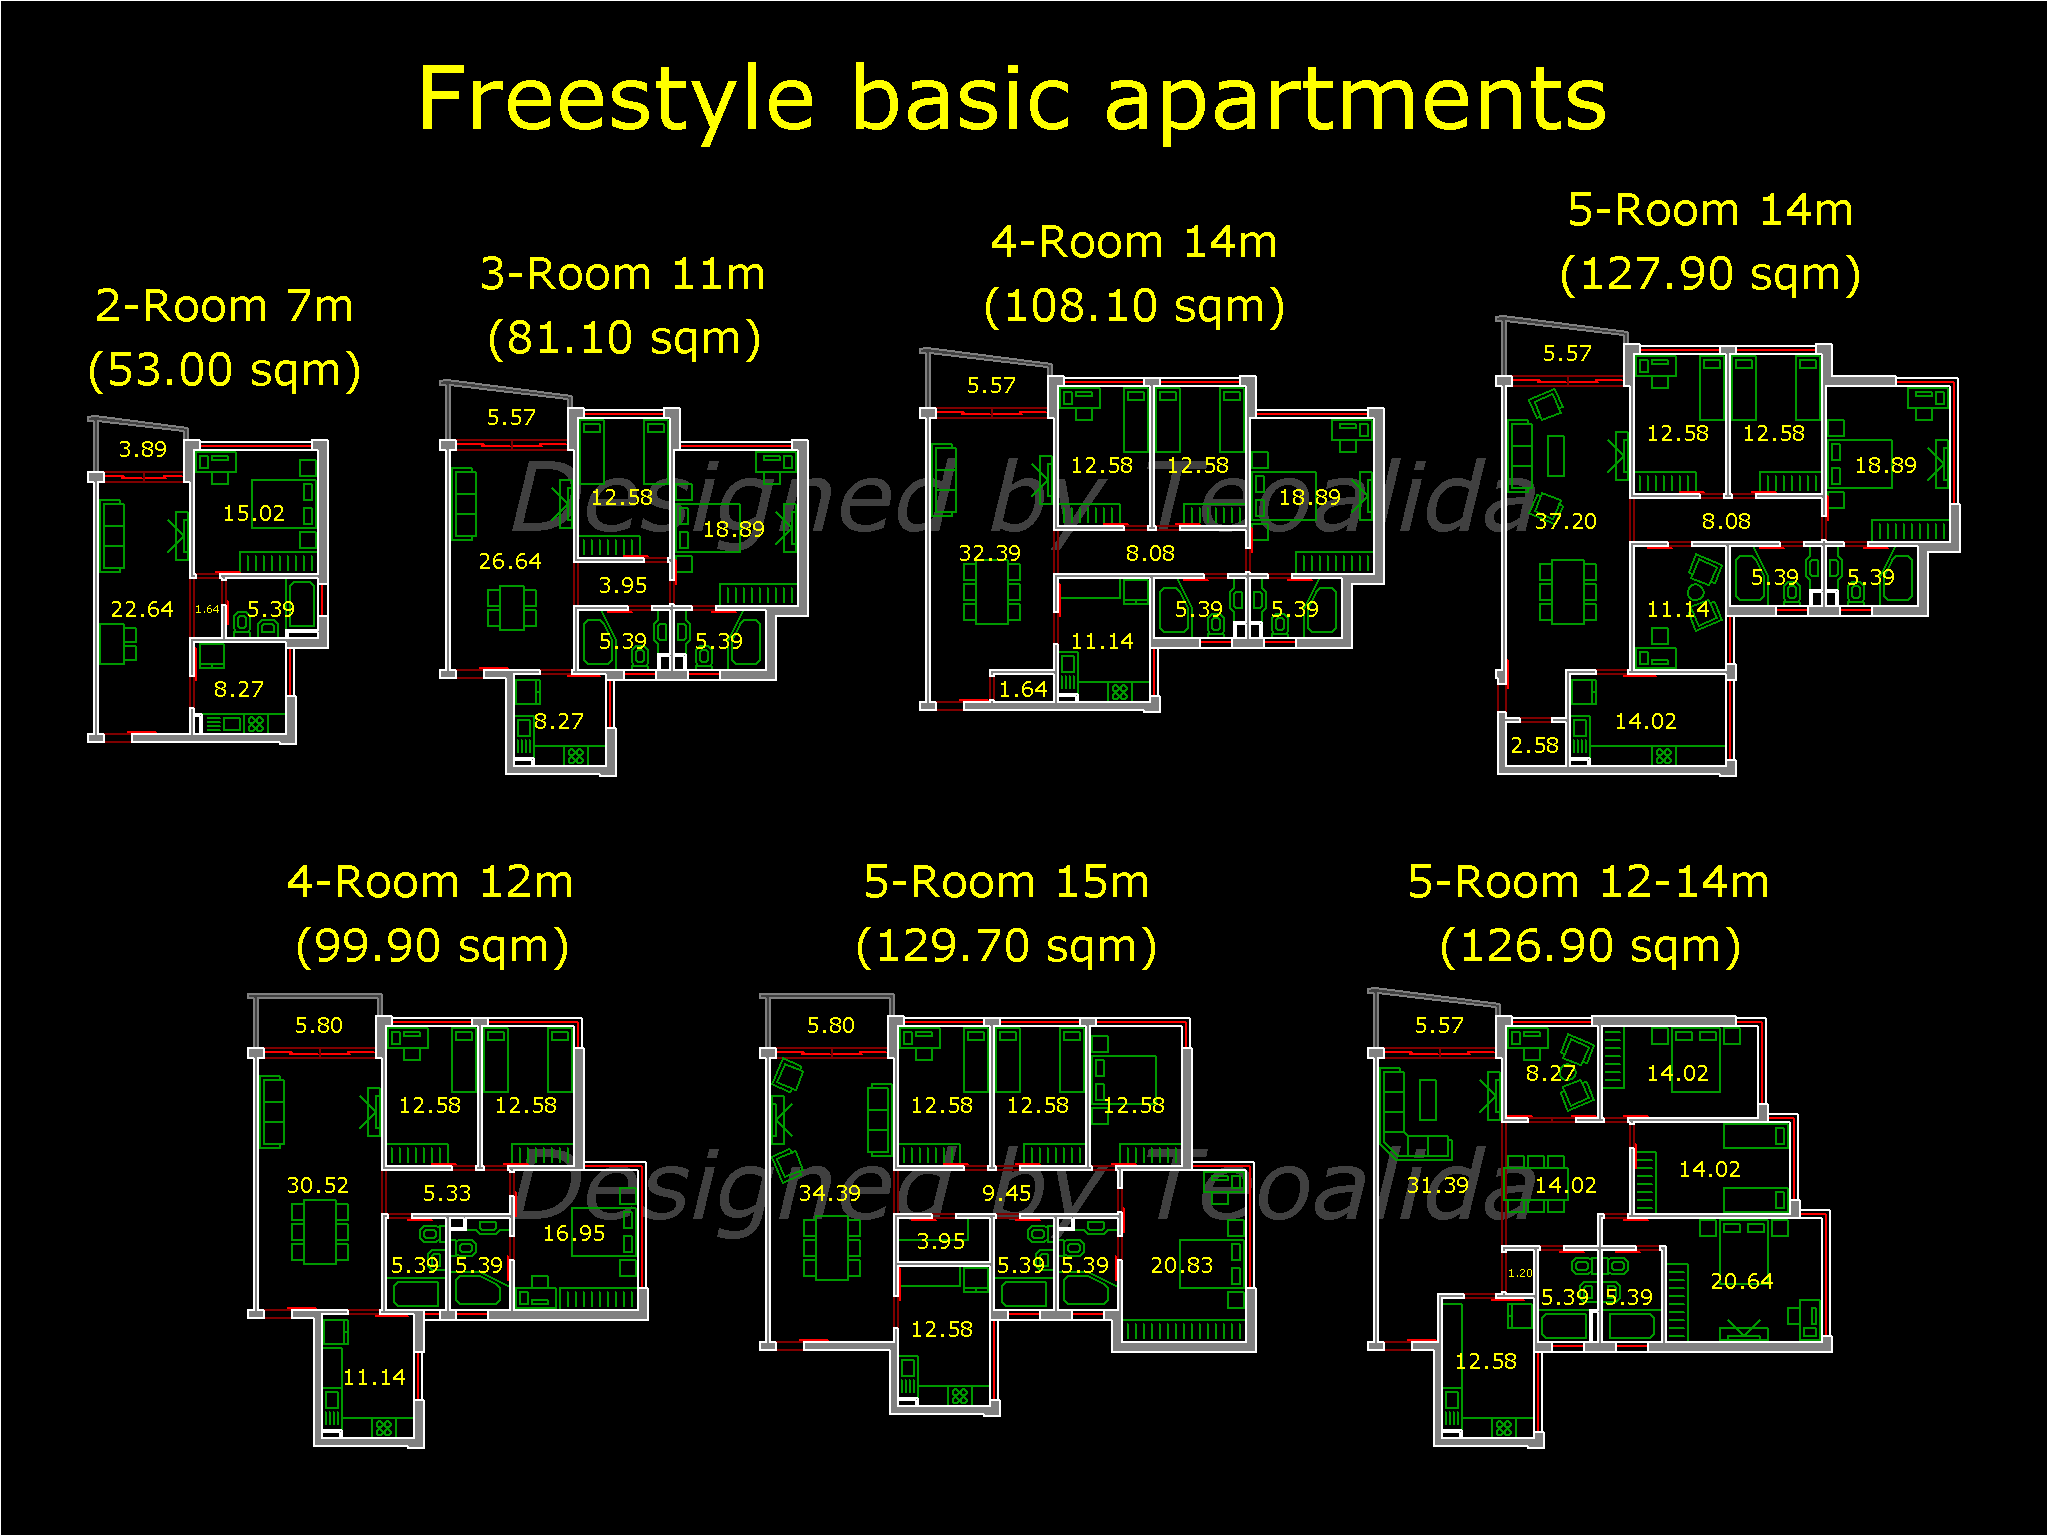 Freestyle standard unit types